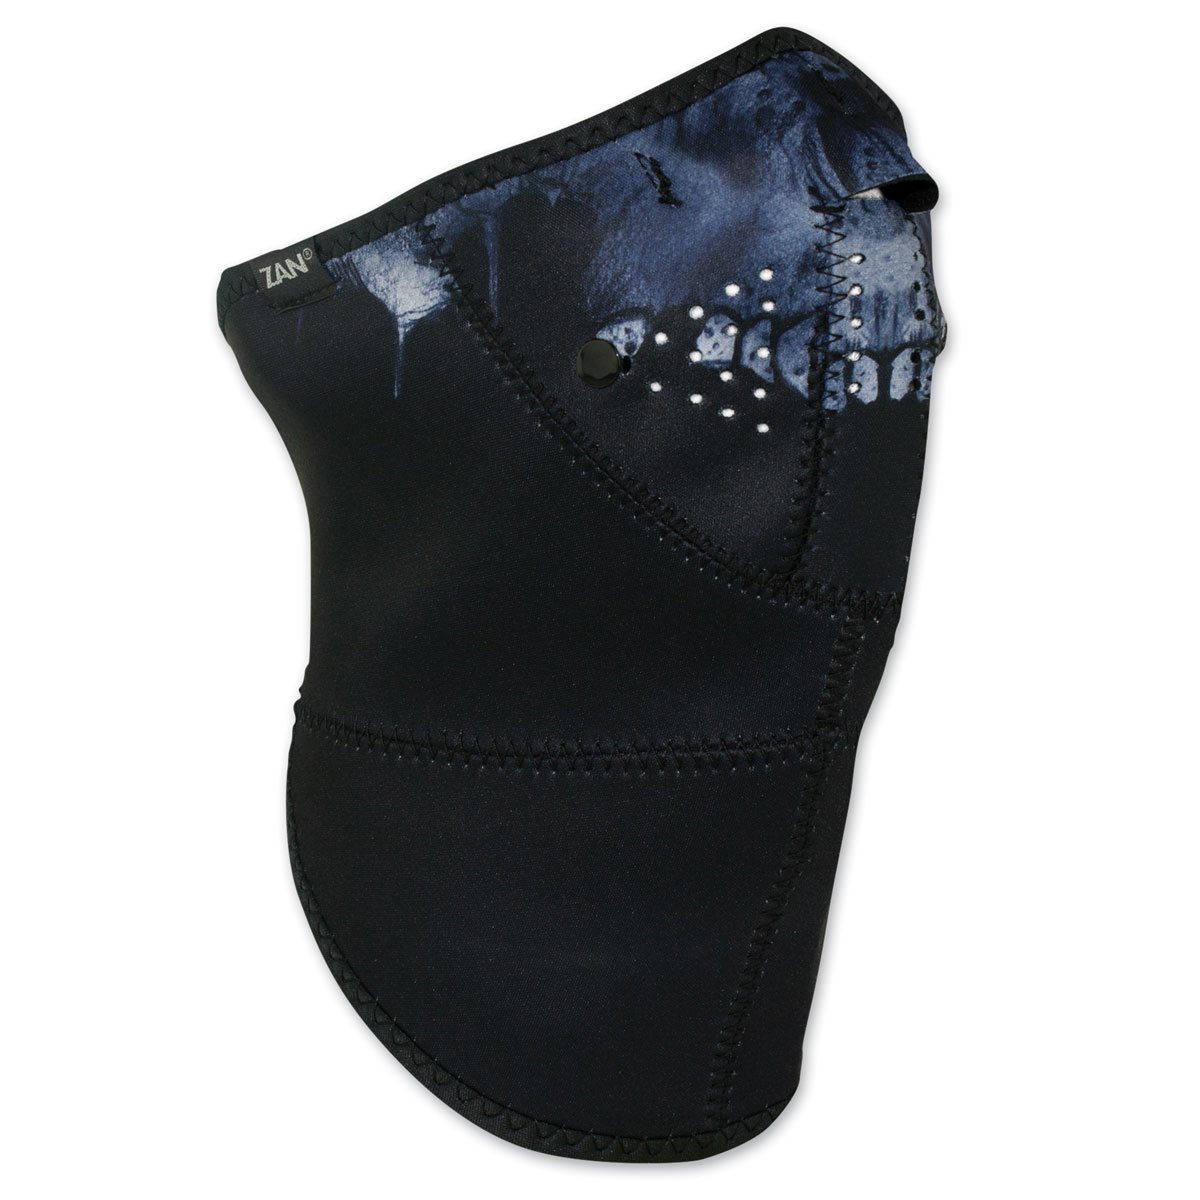 ZAN headgear 3 Panel Neo-X Midnight Skull Neoprene Mask